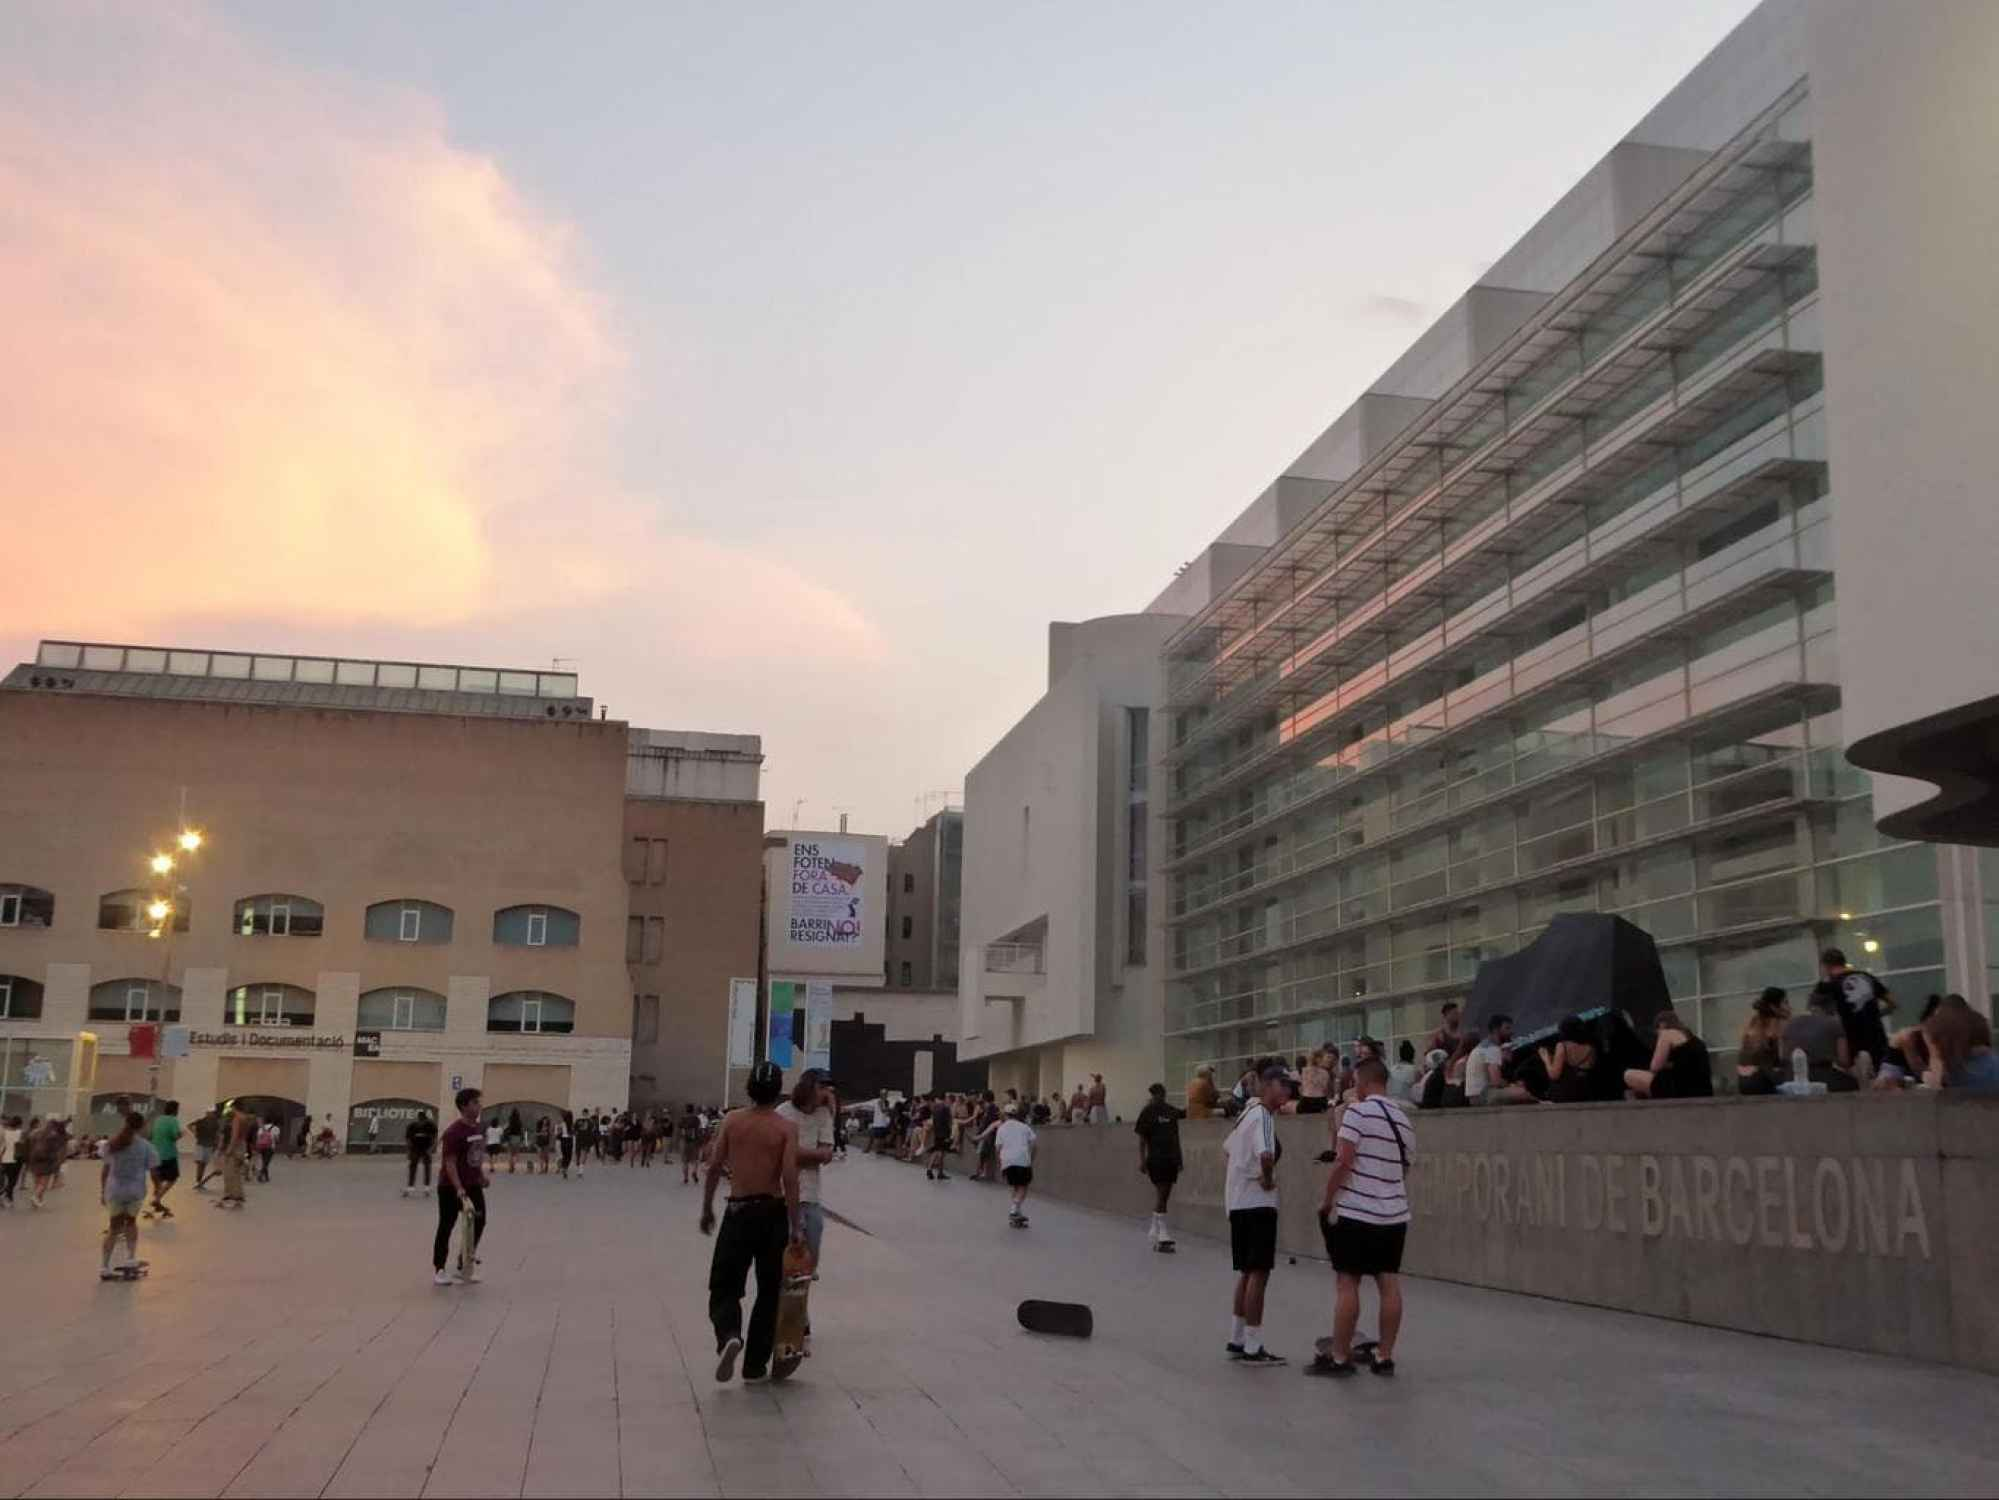 Skaters in front of MACBA